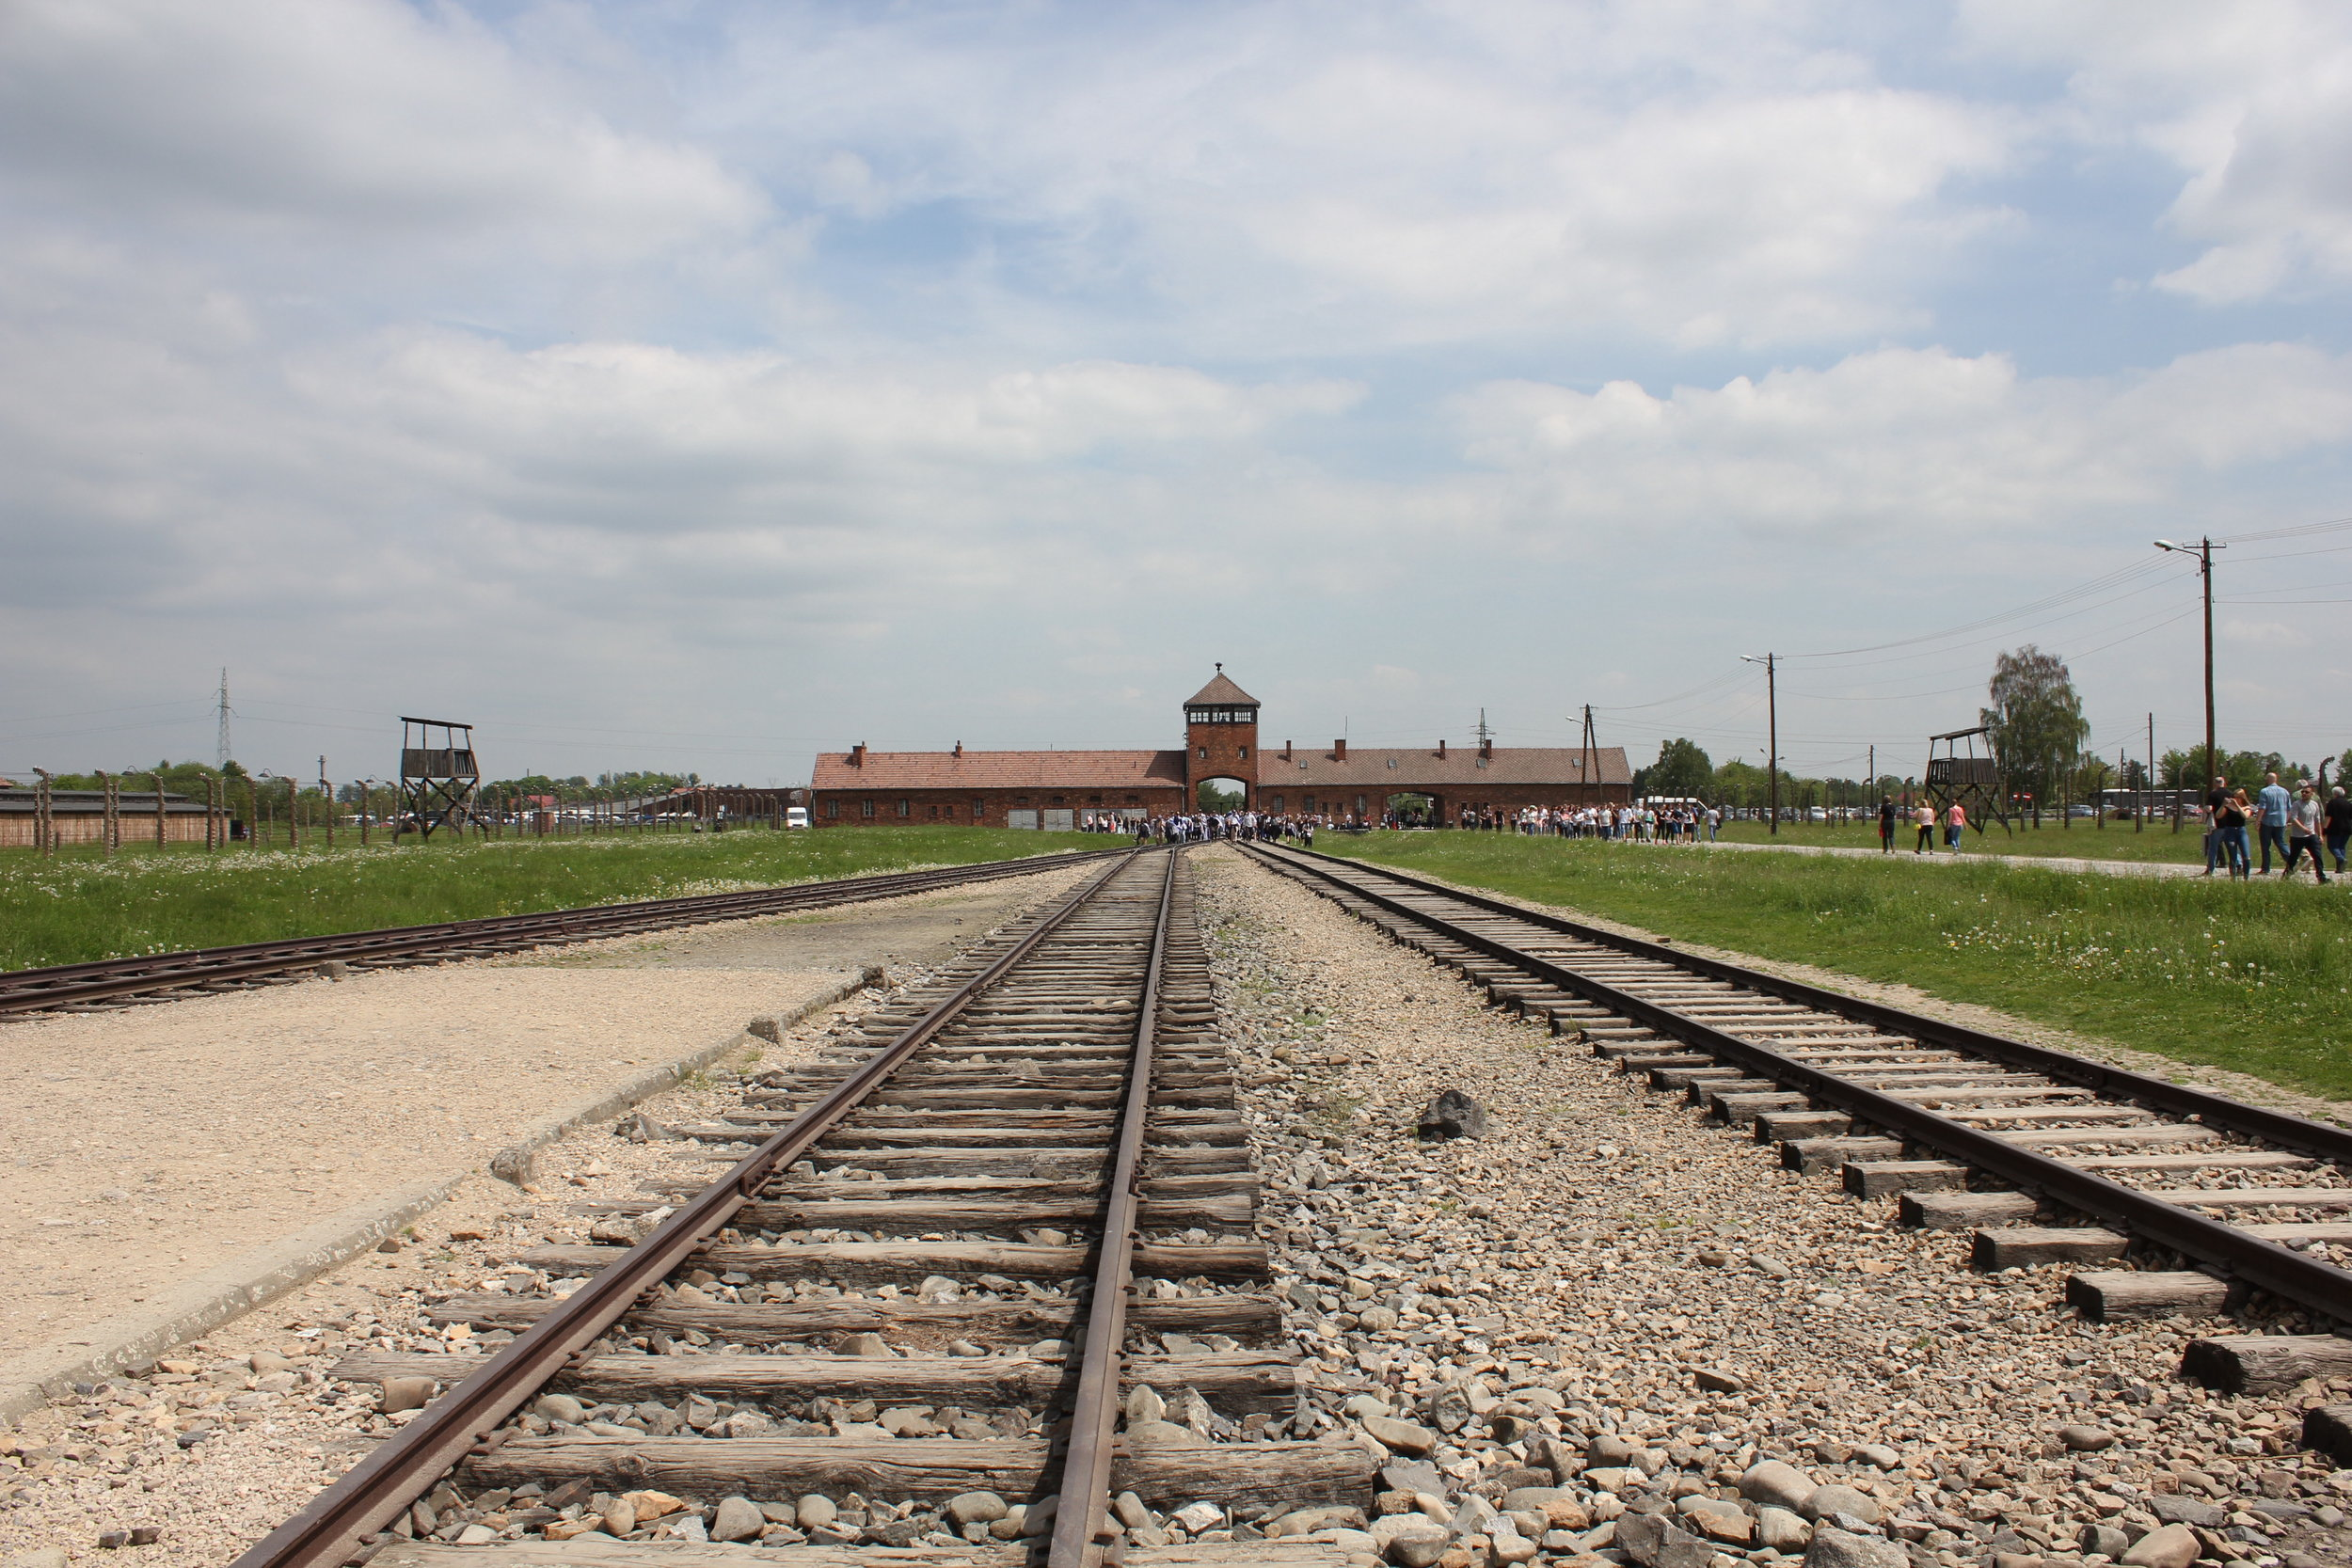 """The """"death gate"""" as viewed from within: the Nazis constructed an entirely new railway spur to transport Jews directly into the Birkenau extermination camp, in order to make the extermination process as efficient as possible"""